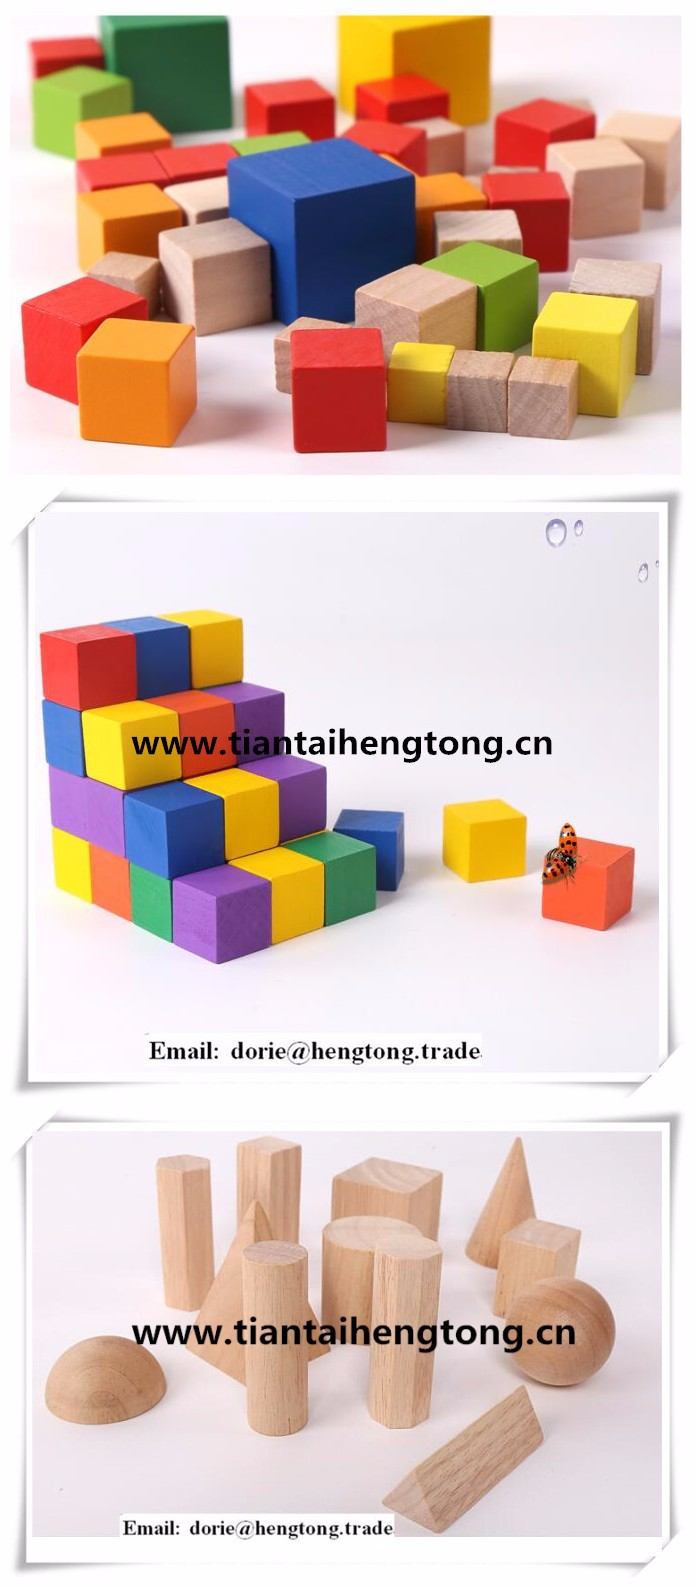 2cm wooden cube ,wooden accessory,natural color cube wooden accessory